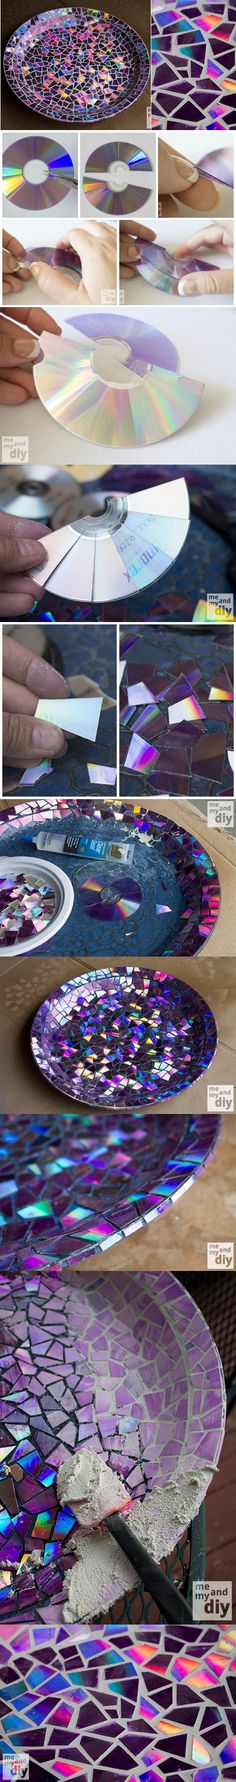 Make the best use of your creativity with these brilliant craft projects. Immediately try this Easy DIY Holiday Crafts! Cd Crafts, Diy Crafts To Sell, Diy Crafts For Kids, Home Crafts, Arts And Crafts, Easy Crafts, Mosaic Projects, Craft Projects, Diy Niños Manualidades